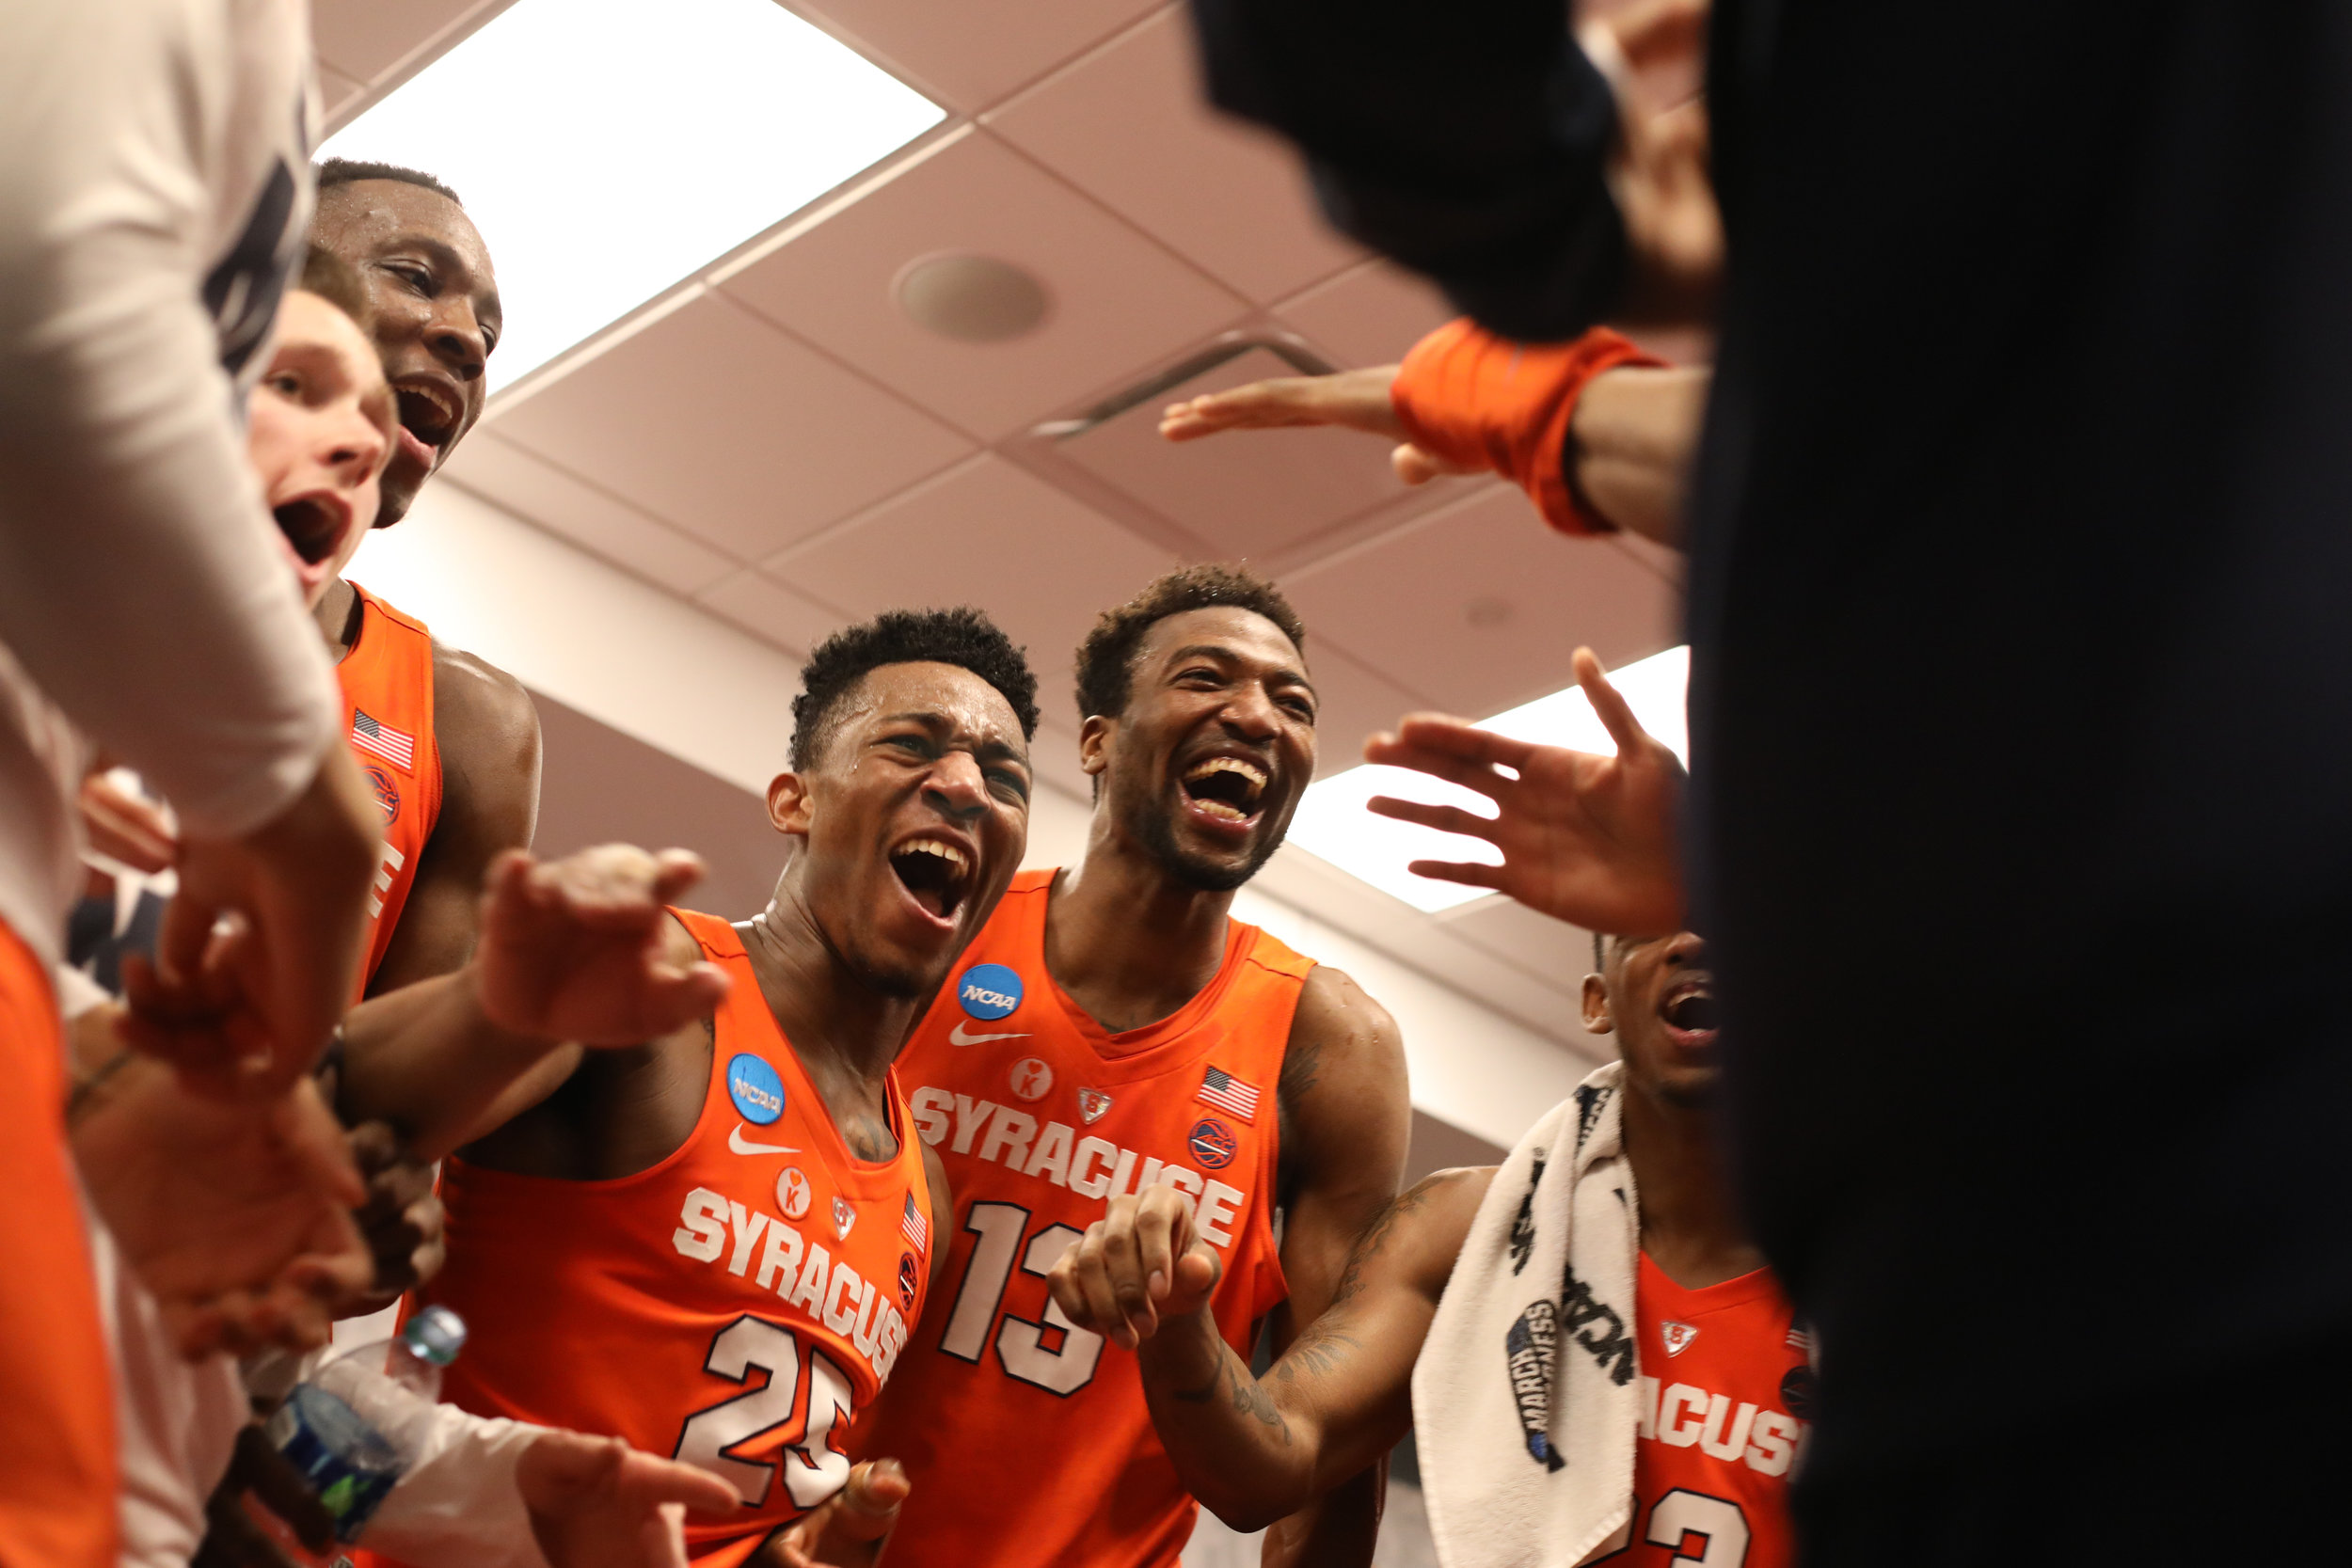 Syracuse men's basketball team celebrate after their win against Michigan State in the second round of the NCAA Tournament on March 18, 2018.